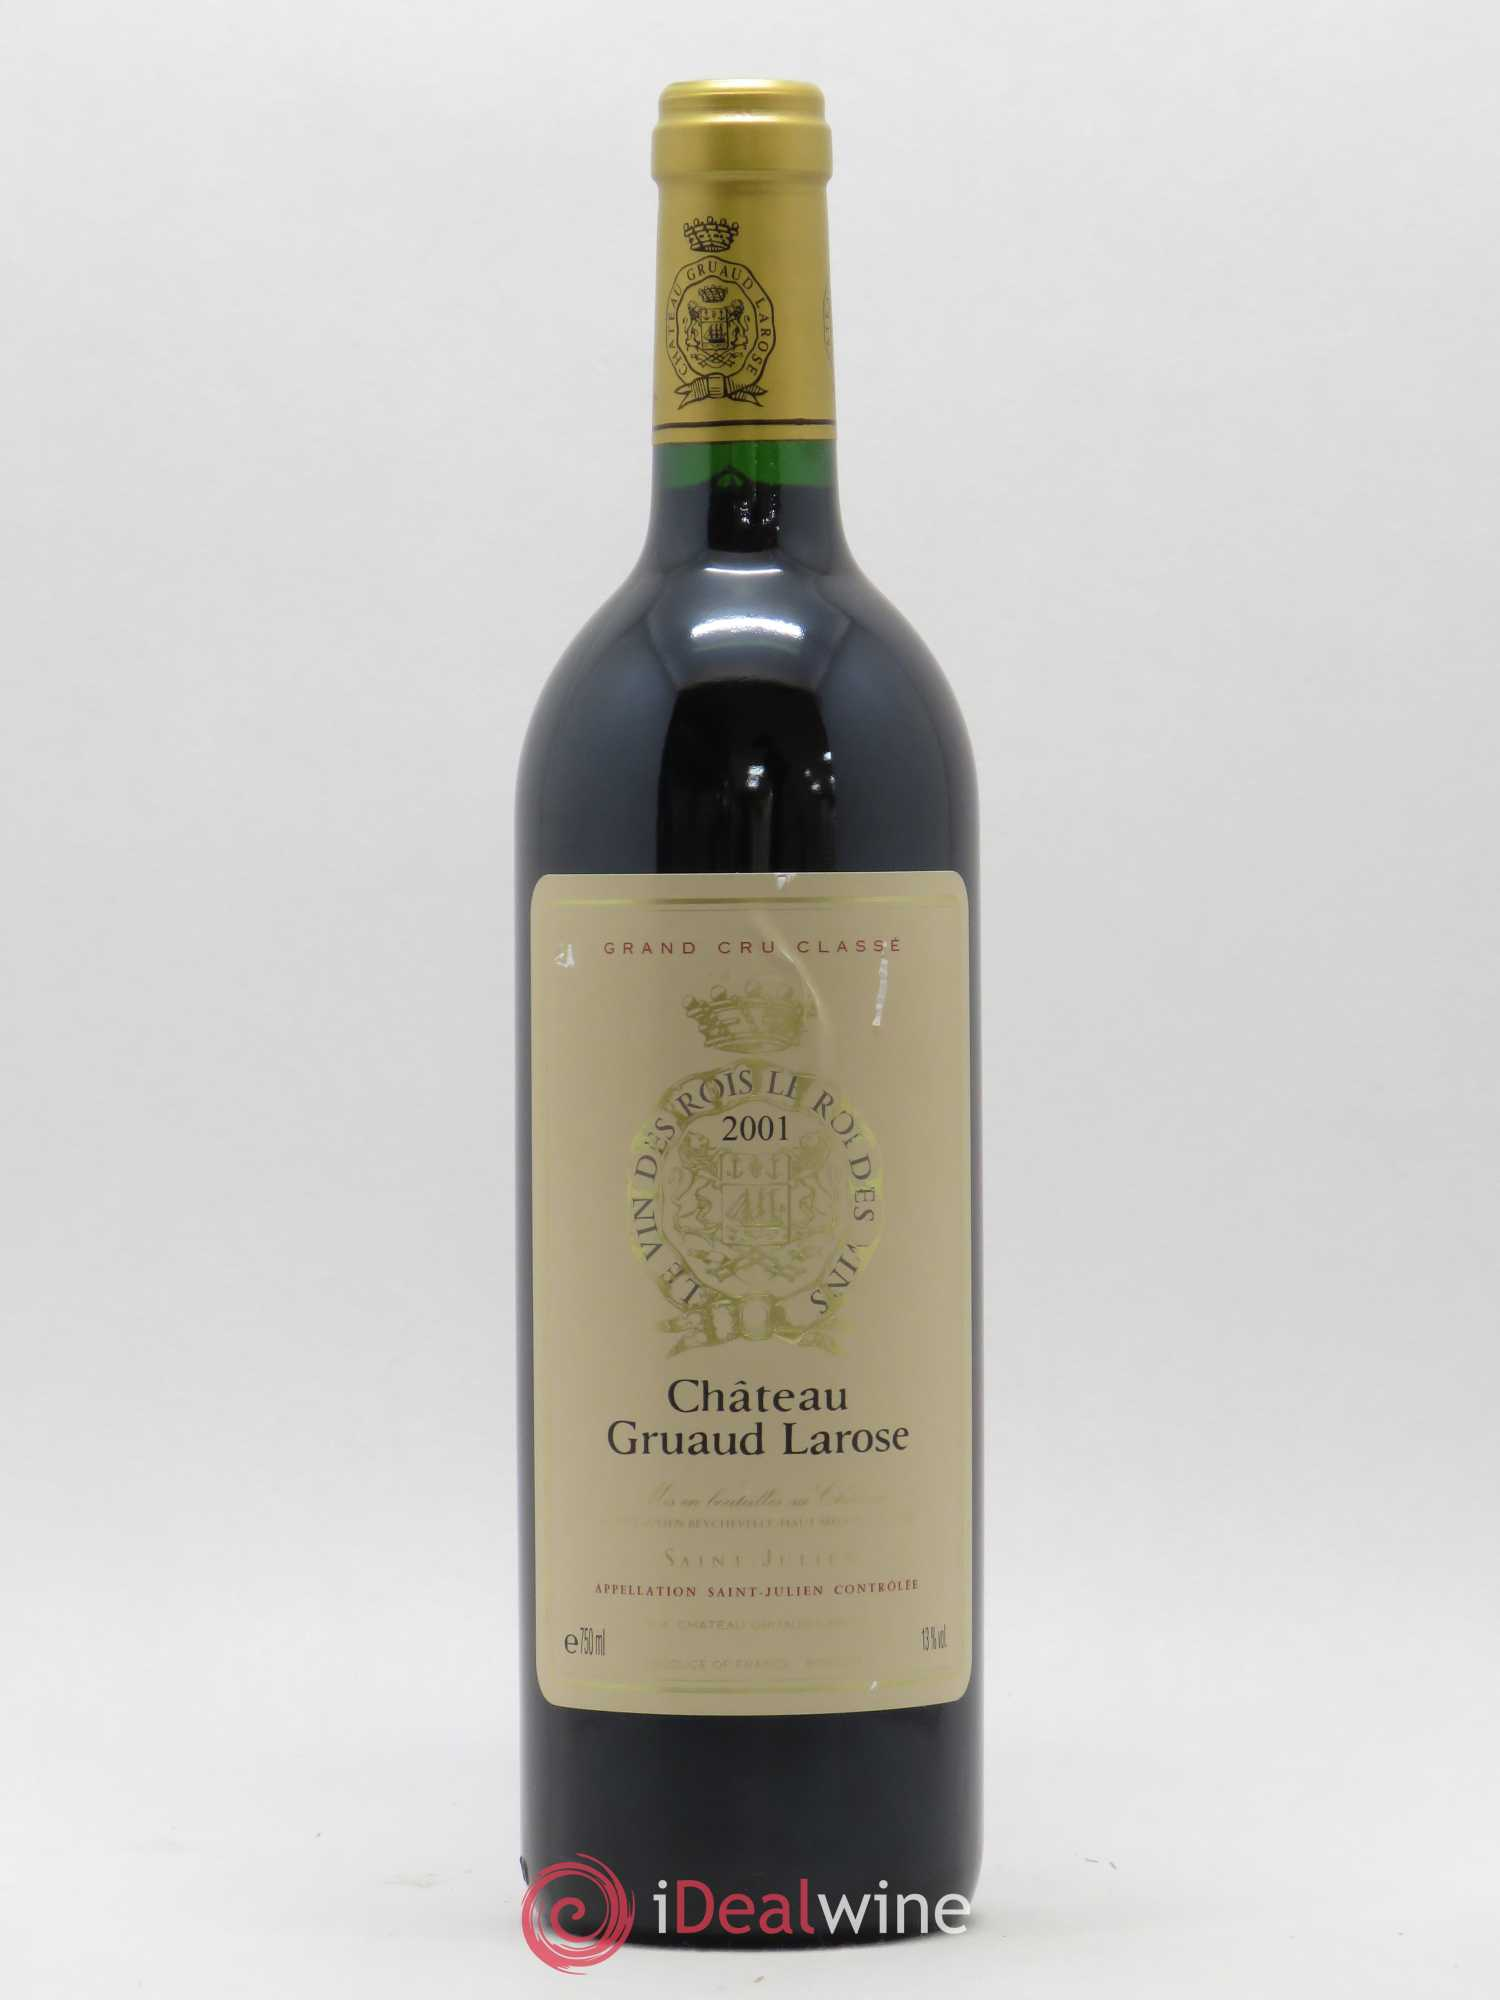 Château Gruaud Larose 2ème Grand Cru Classé  2001 - Lot of 1 Bottle